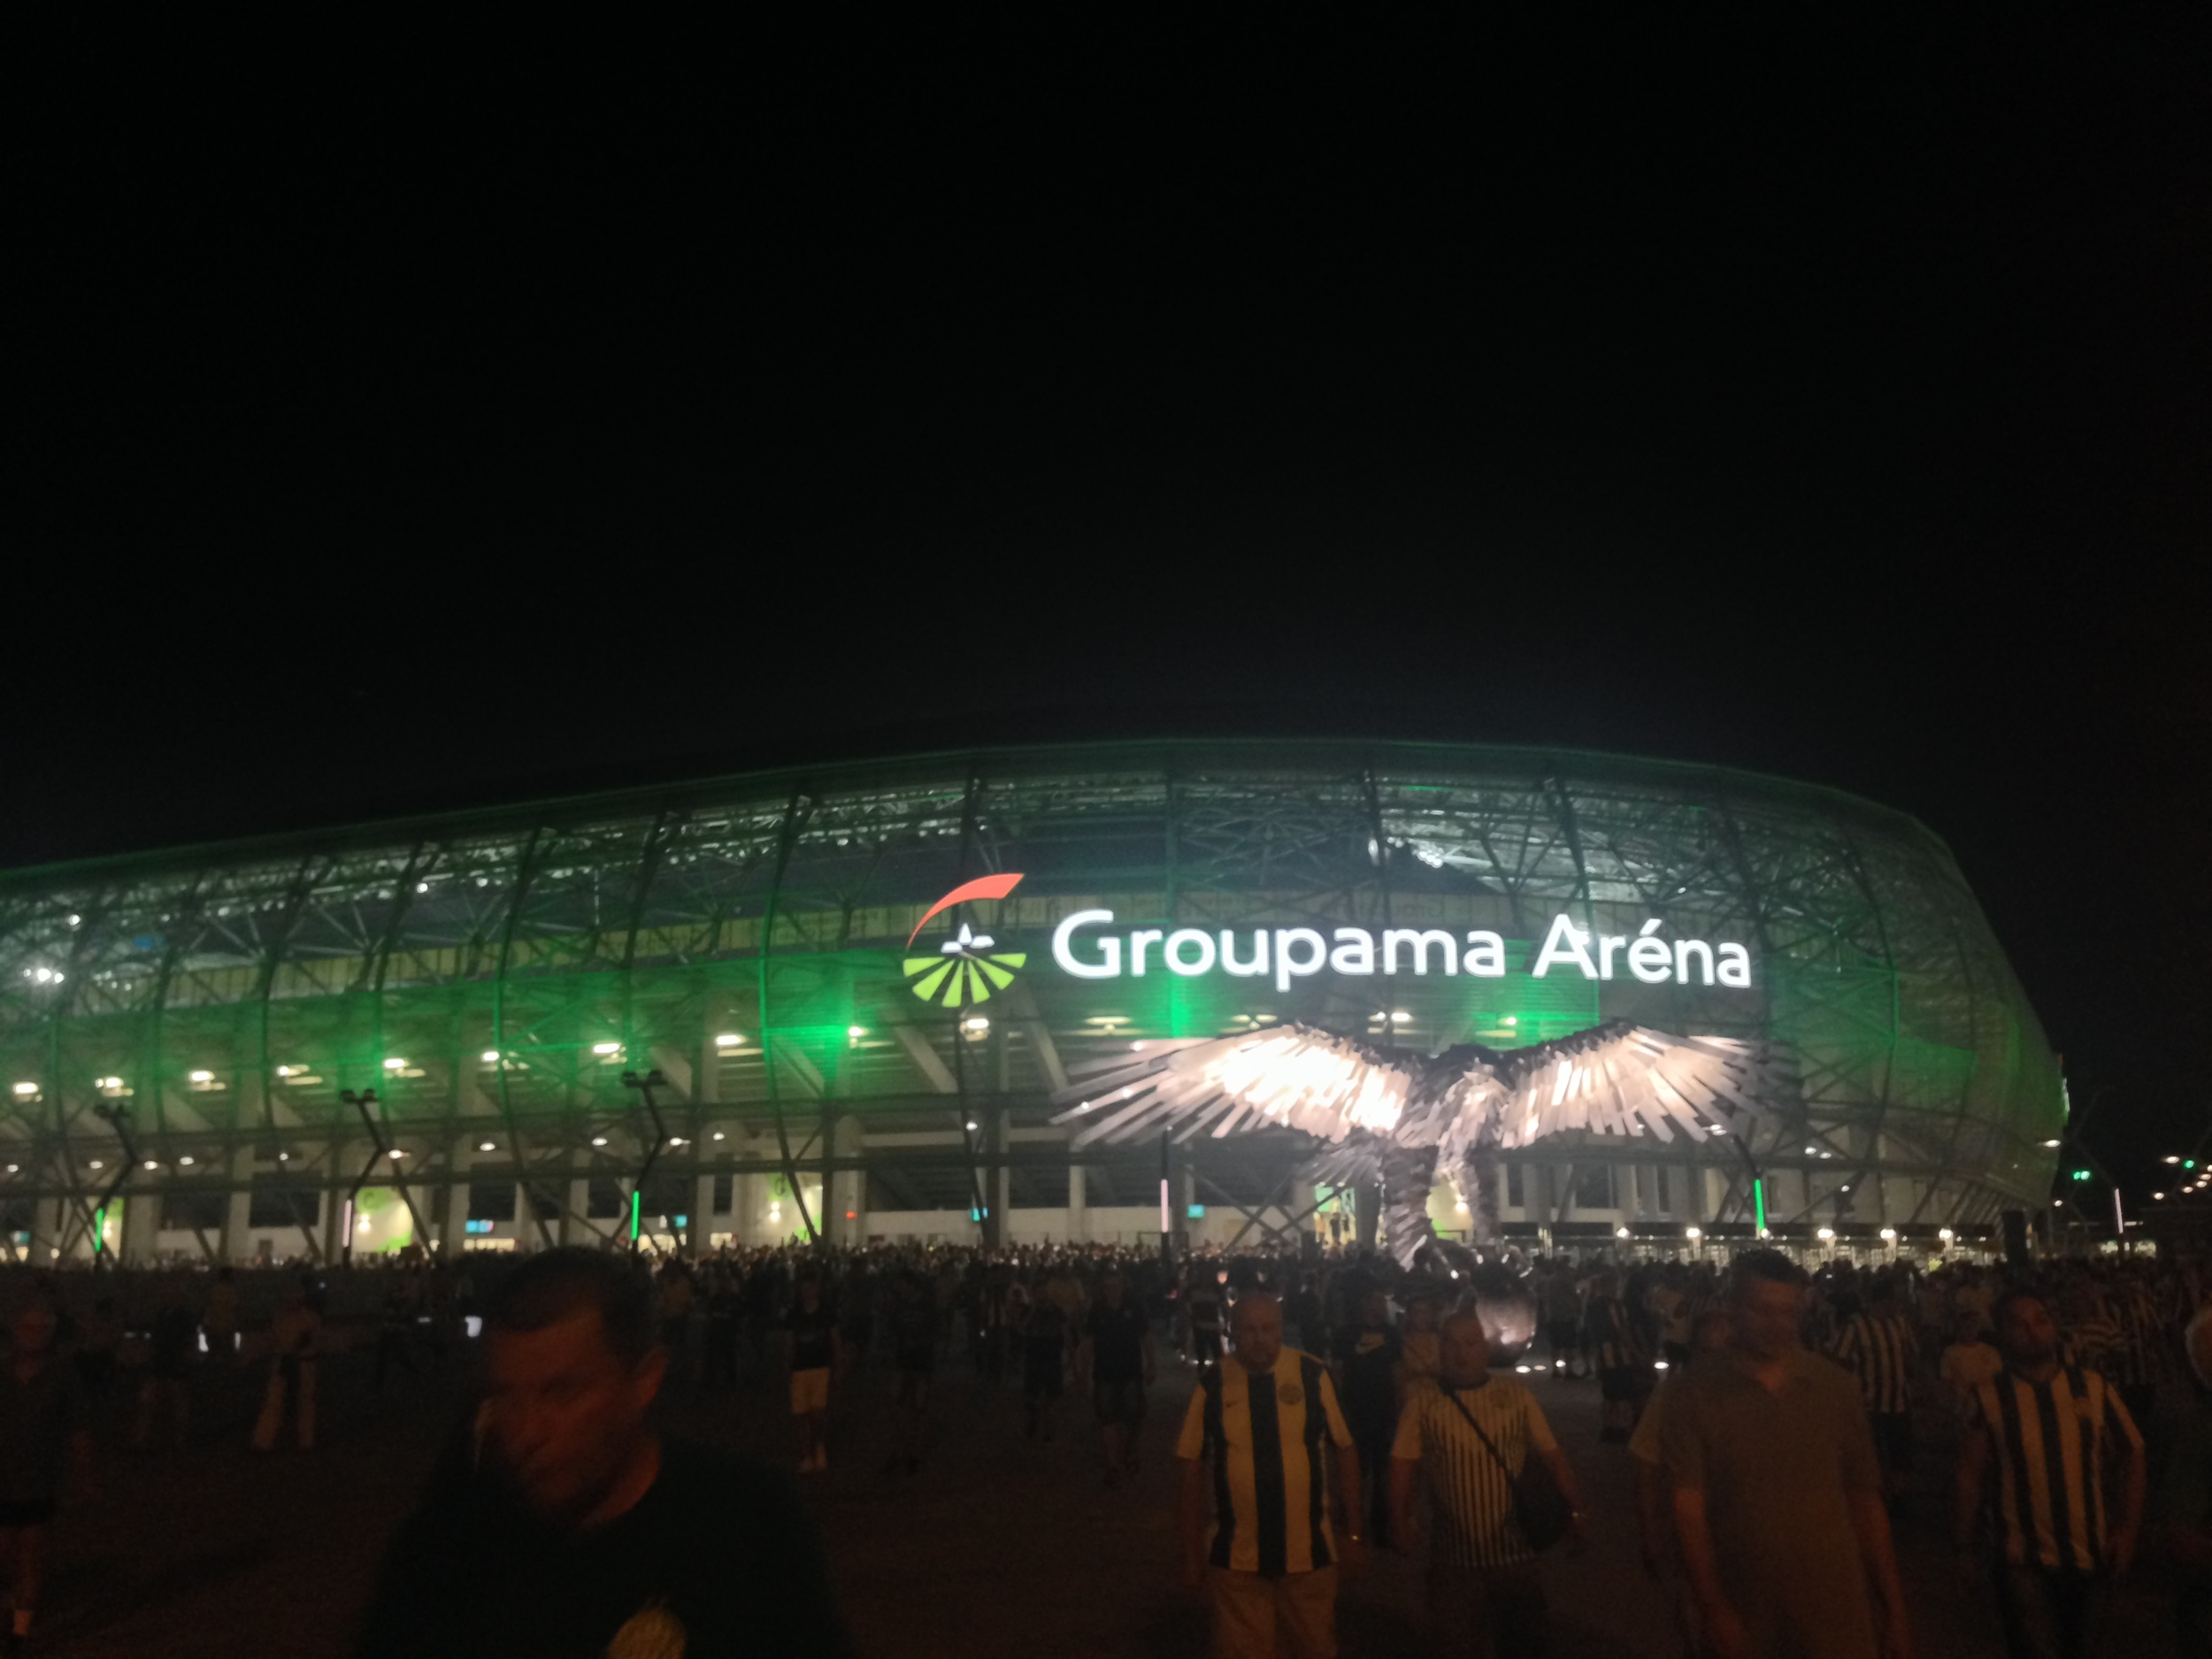 Leaving the stadium to head back to the city after the game had finished. At night the arena lights up green, which is Ferencvaros' colour.